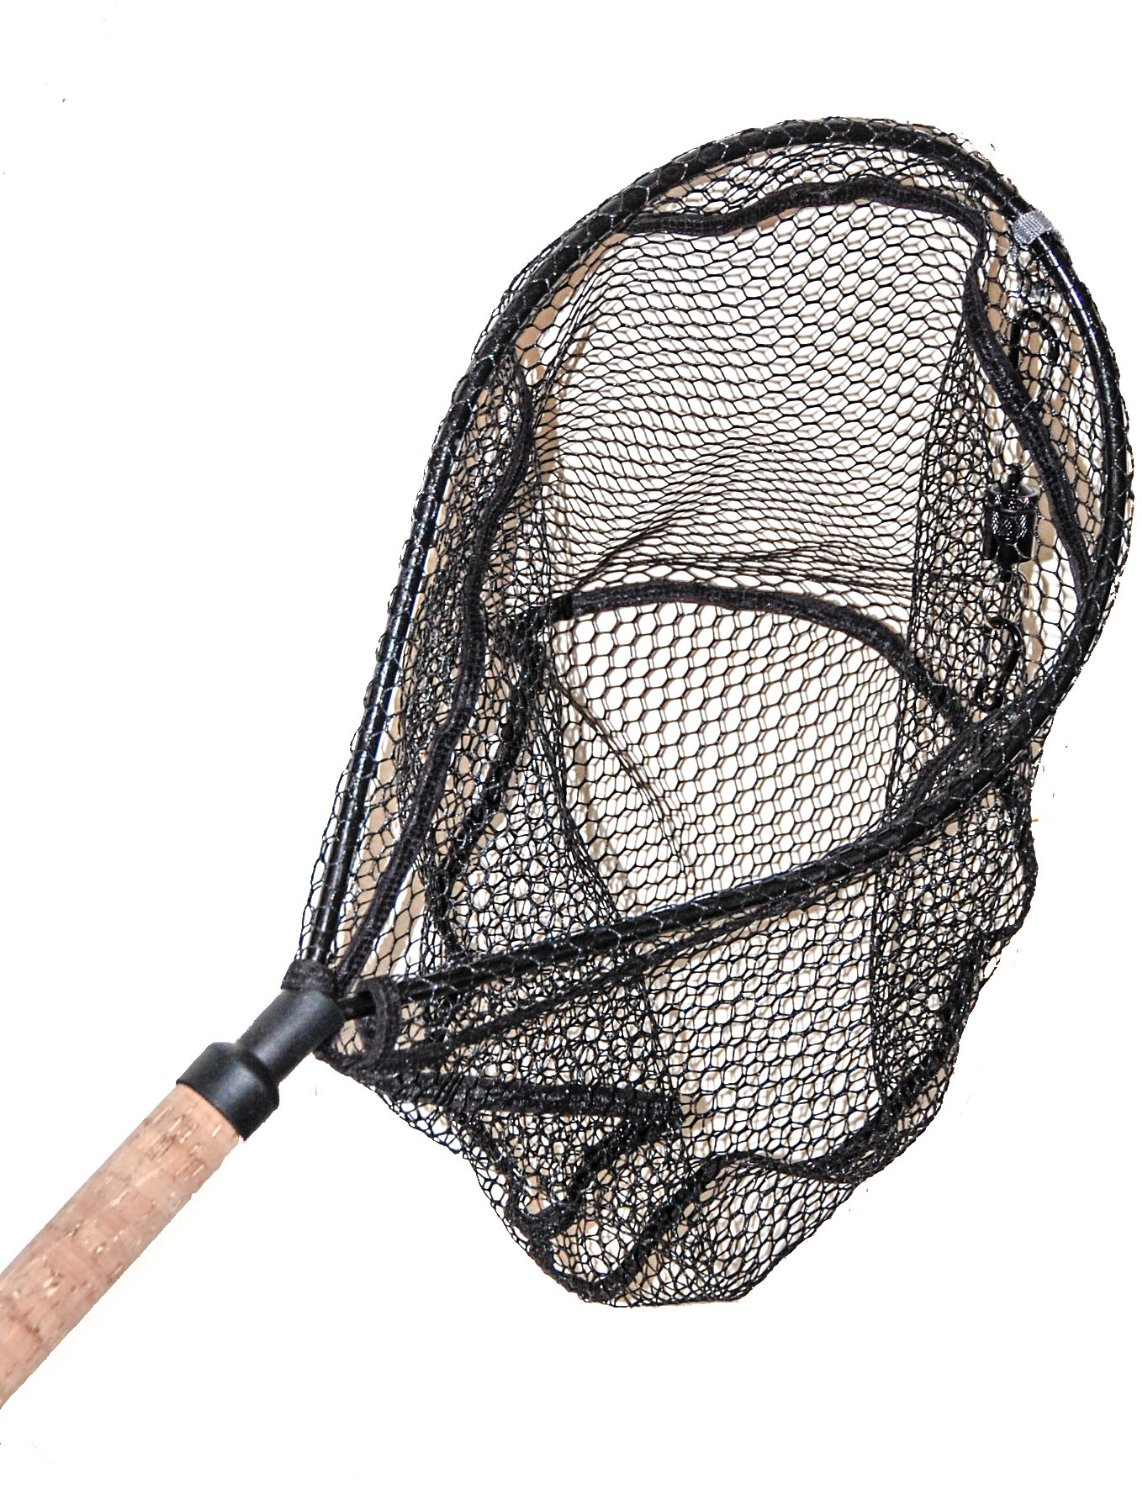 action sports fly fishing nets - fishingnew, Fishing Reels